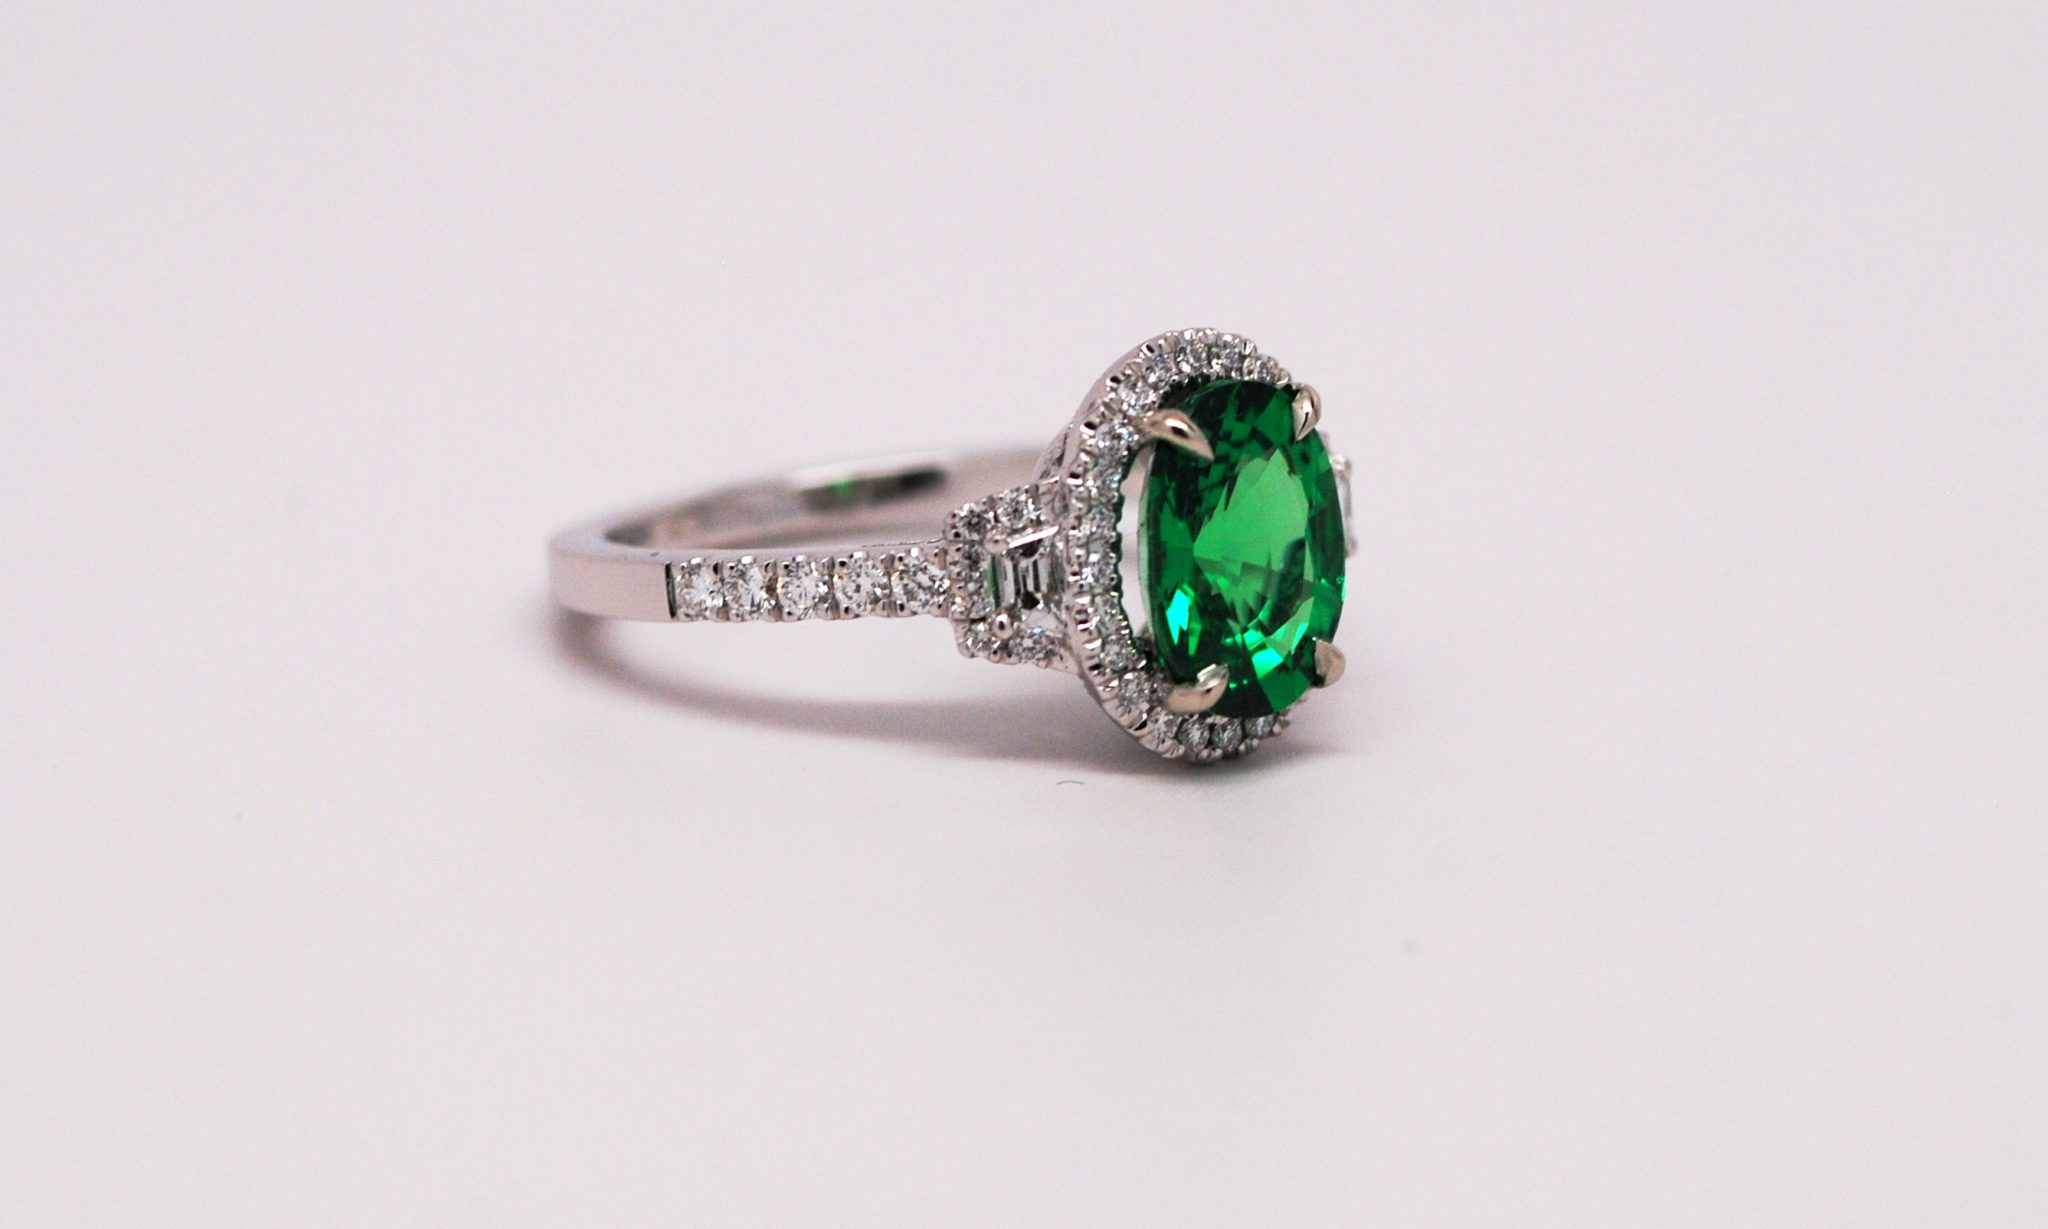 rings rose engagement tourmaline betteridge ring anne gold shop jewellery green angela sportun